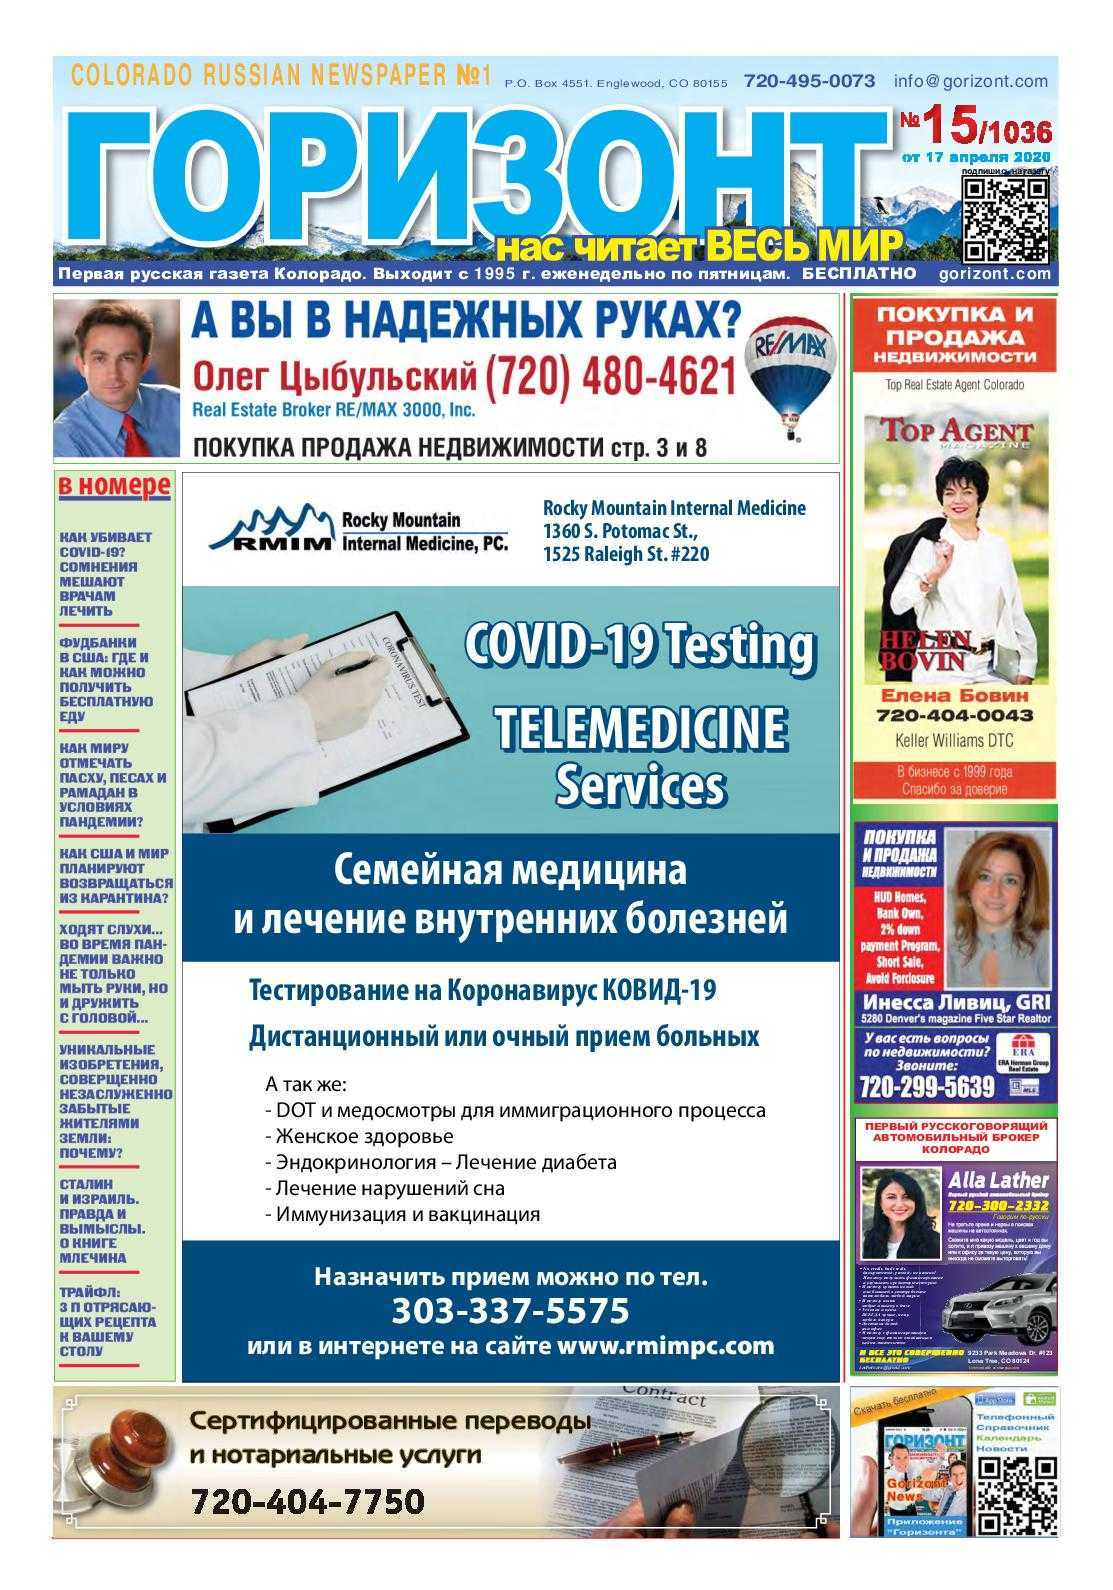 Check ticket capital series mdv 04. lotteries of Belarus